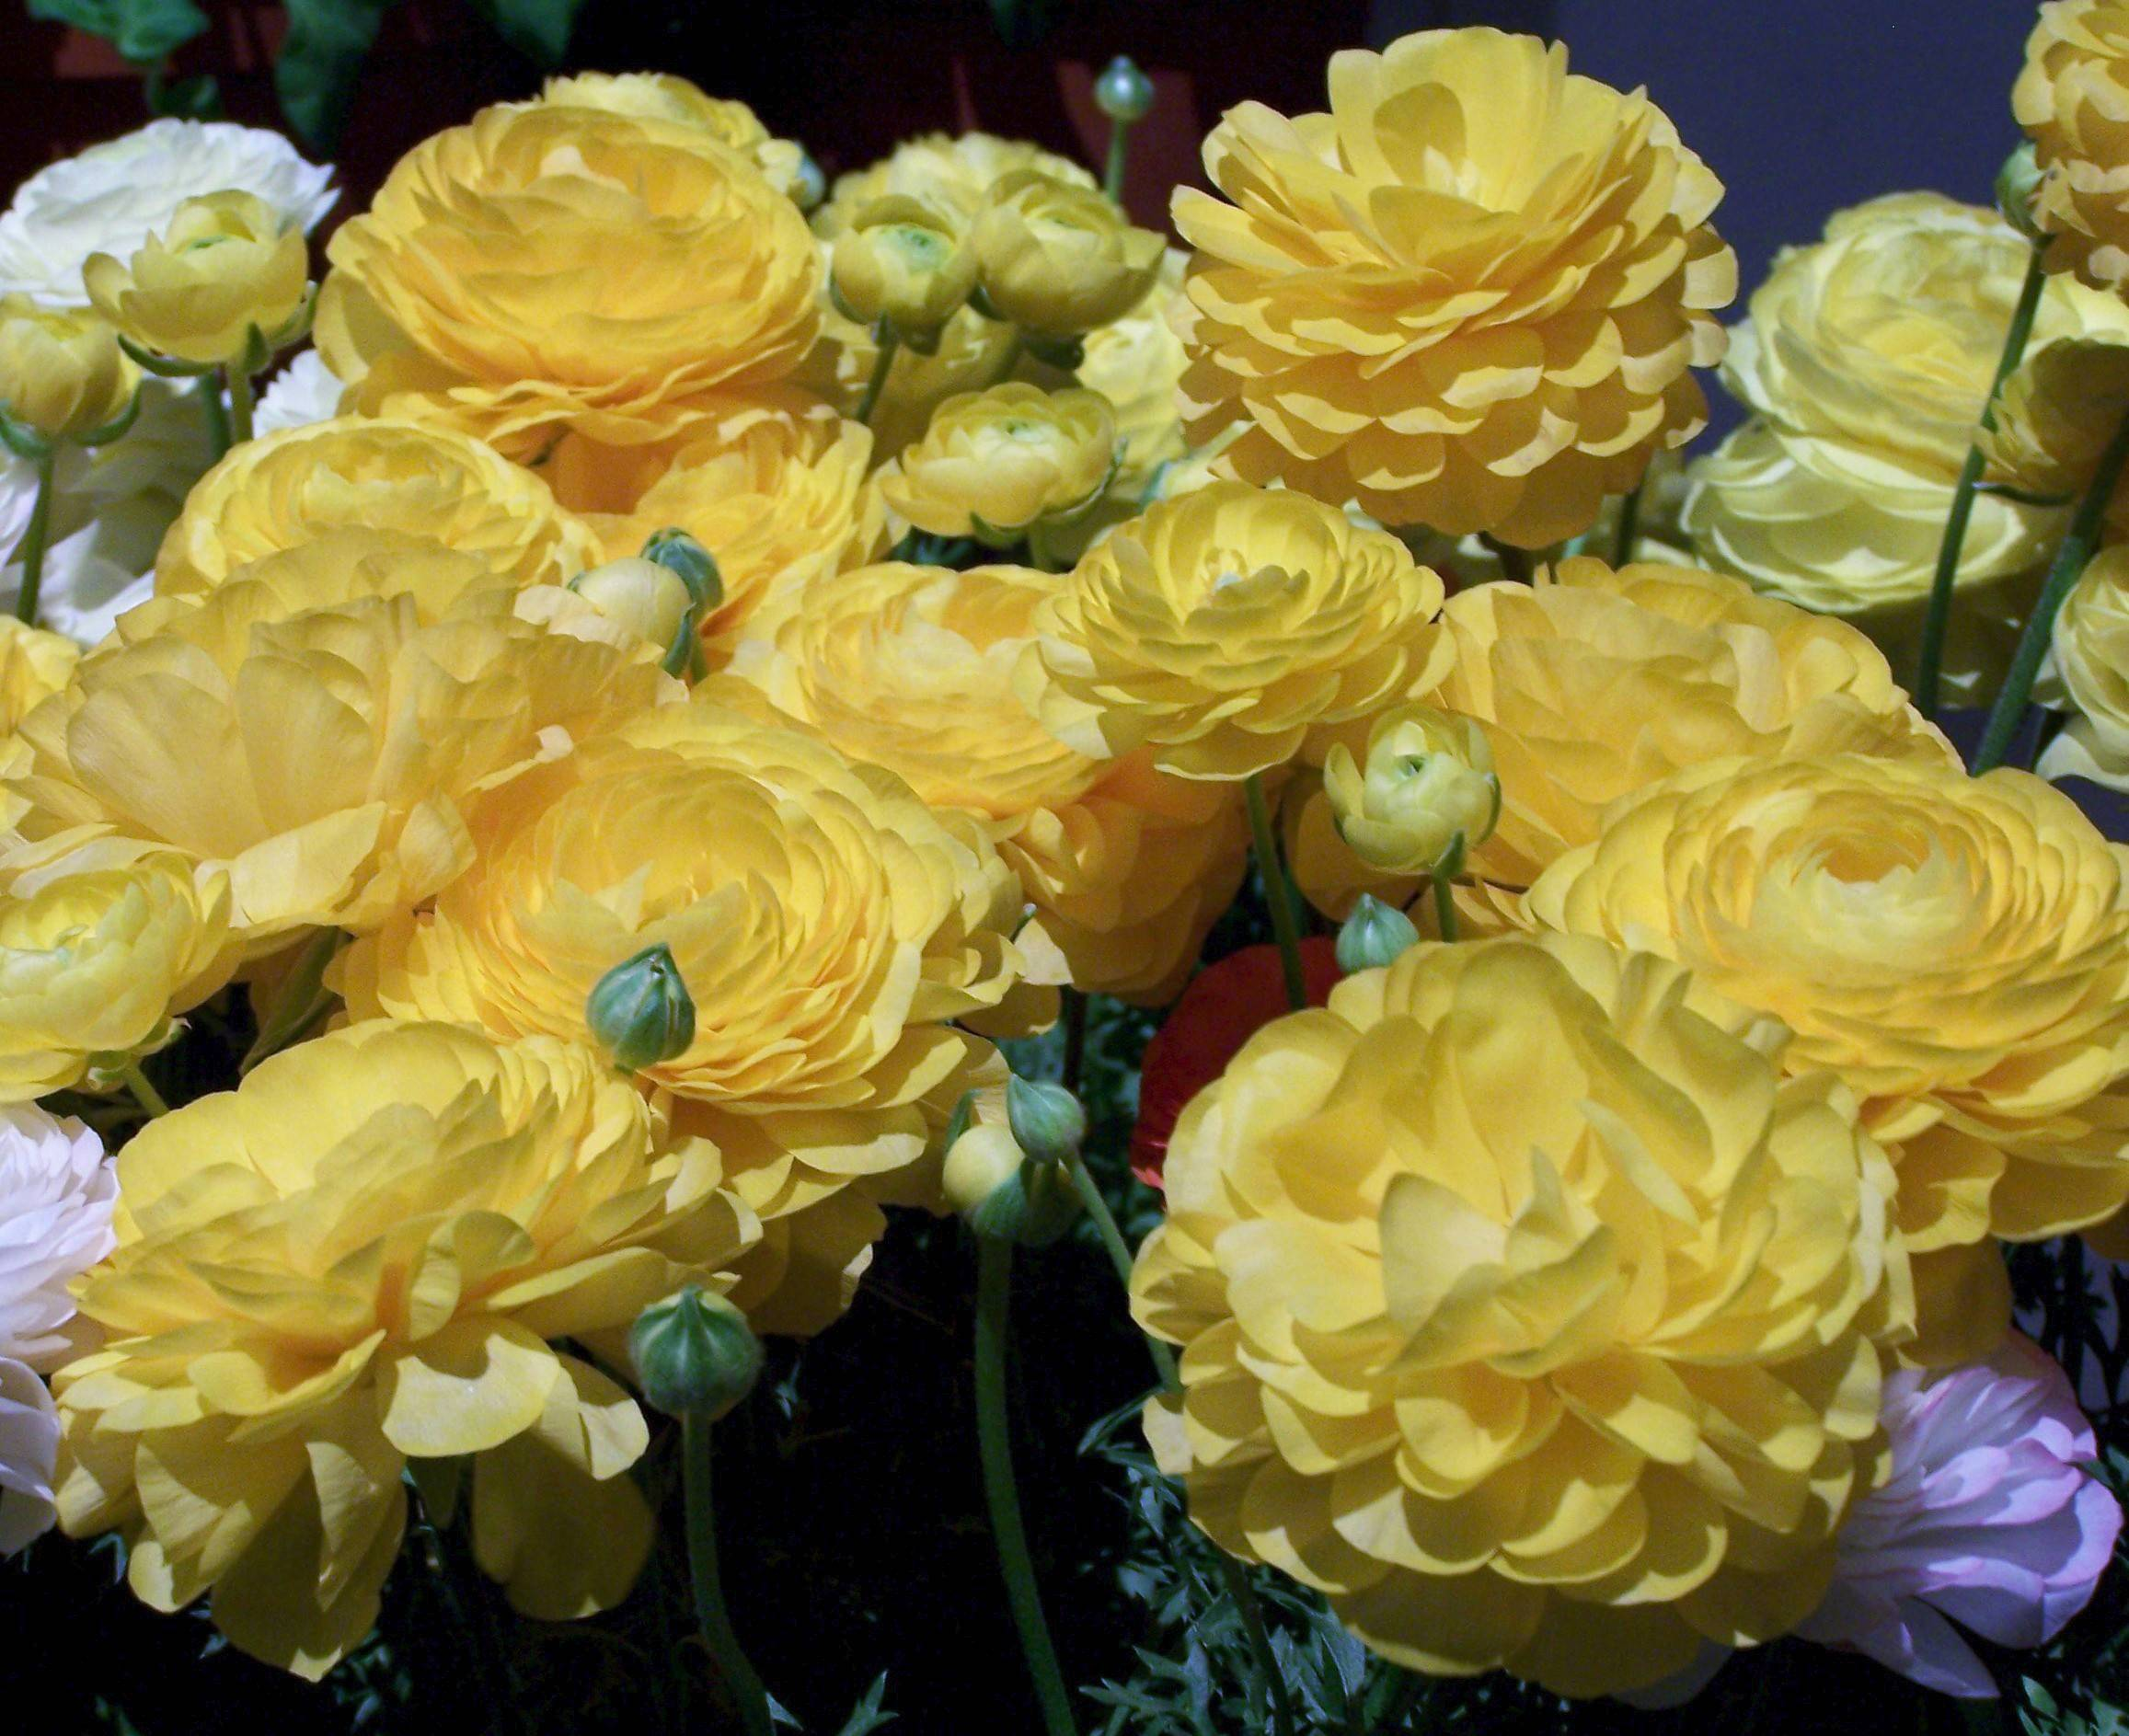 Ranunculus flowers can last a long time in the garden or in a bouquet.